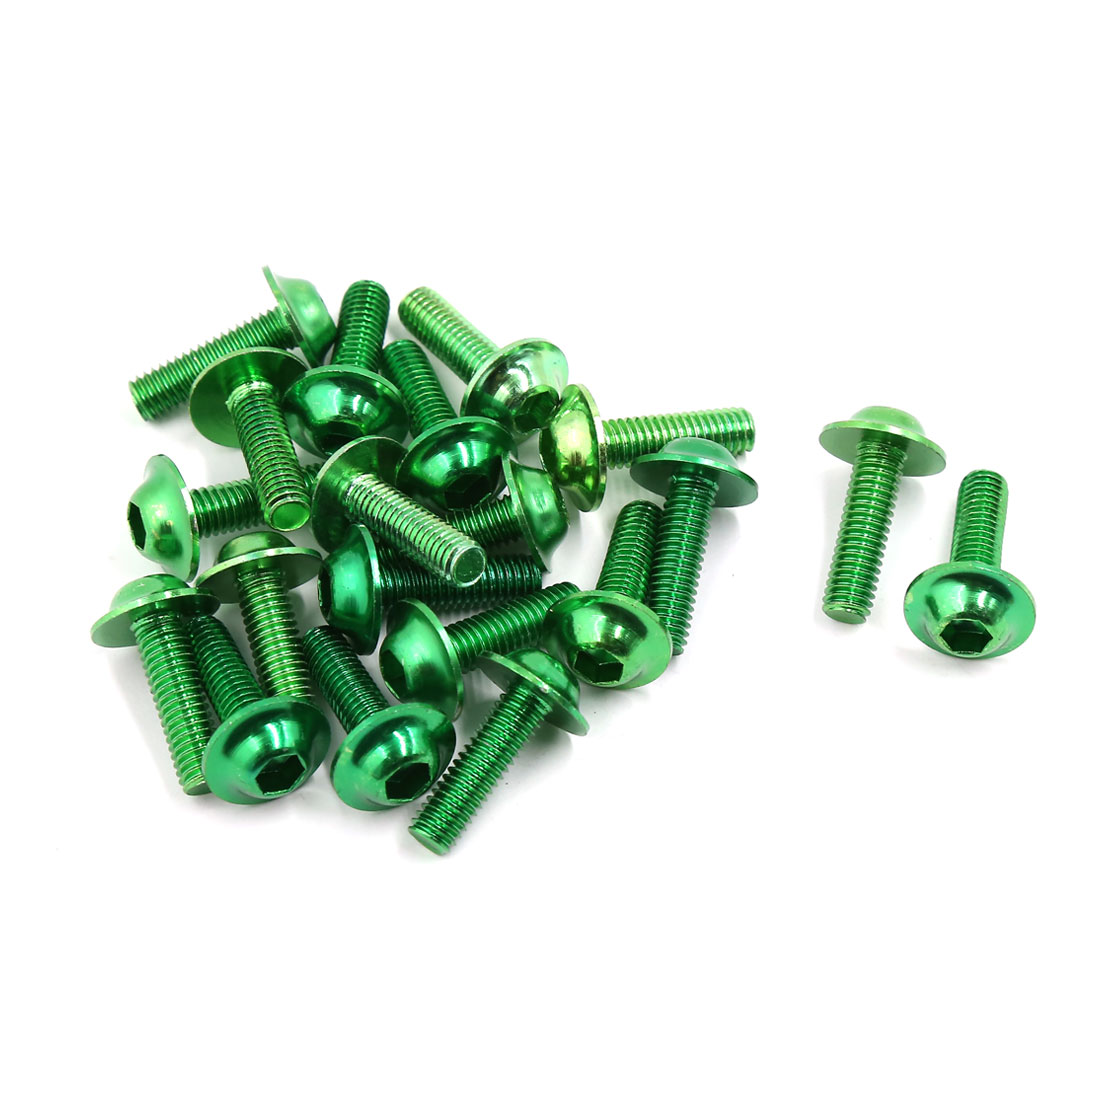 20 Pcs Green Aluminum Alloy Motorcycle Fairing Hexagonal Bolts Screws 6mm Thread